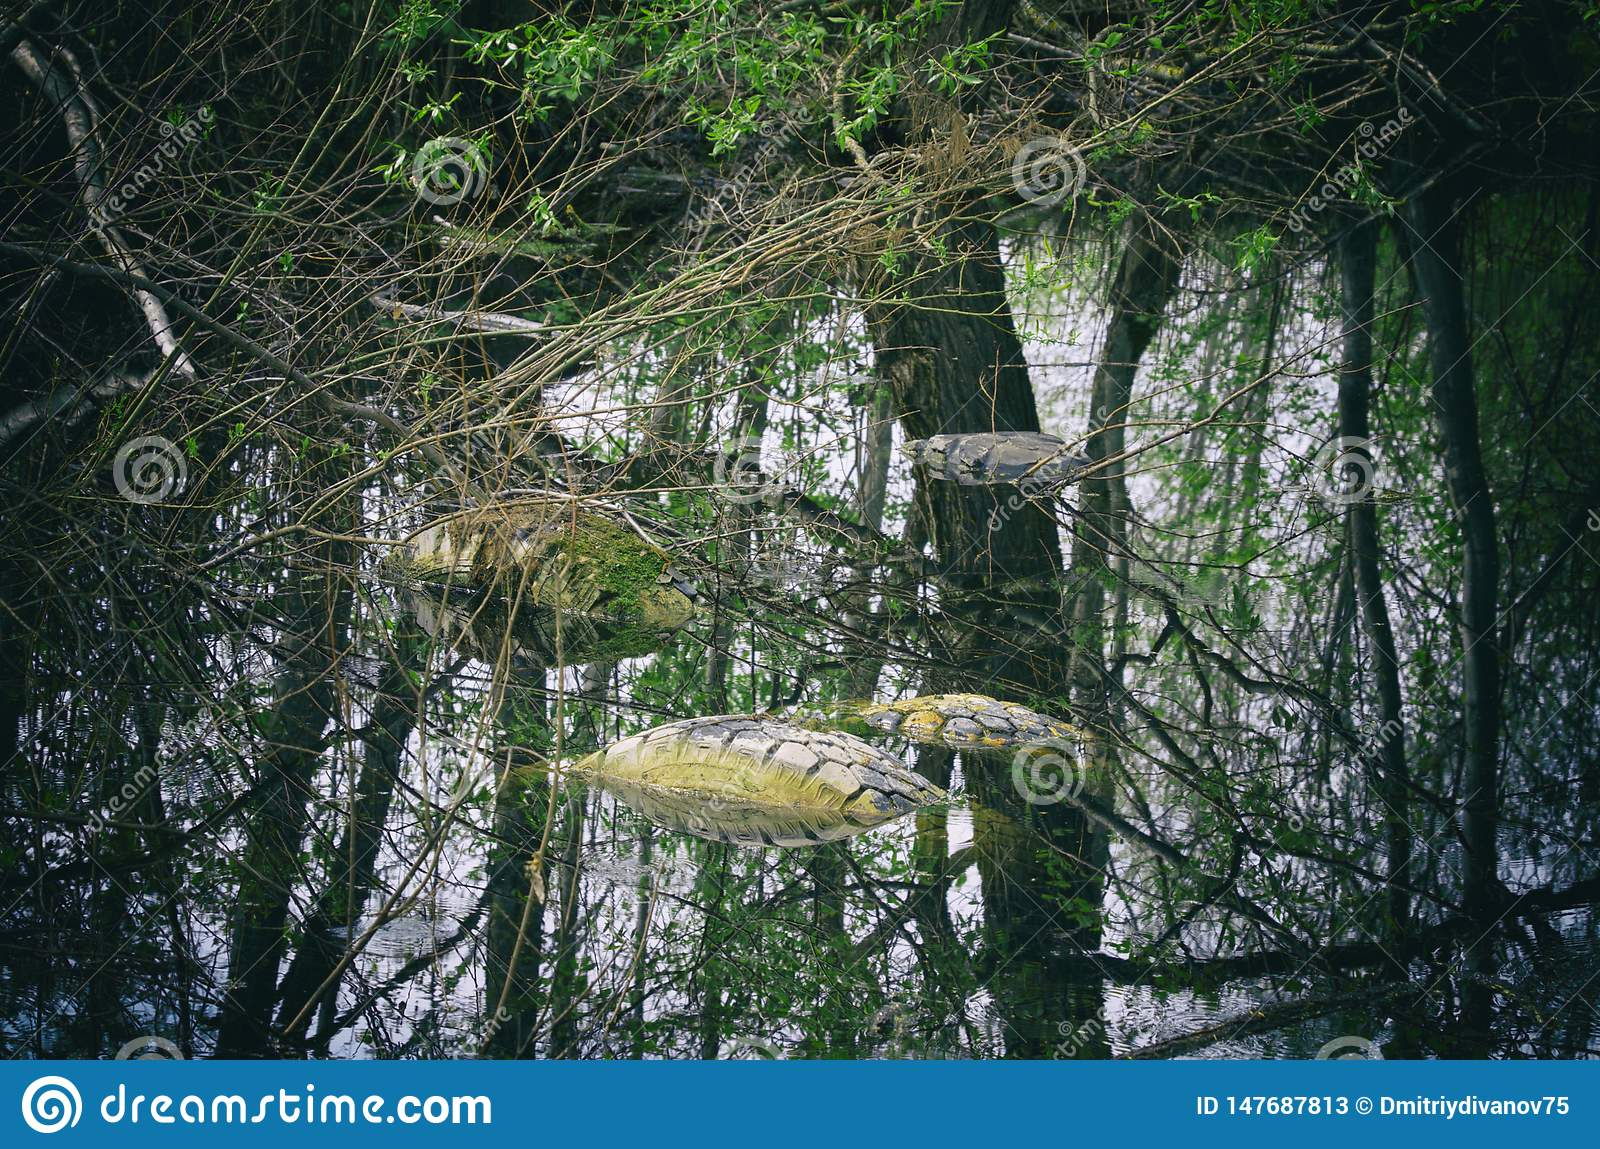 Used tires illegally flooded in a forest pond